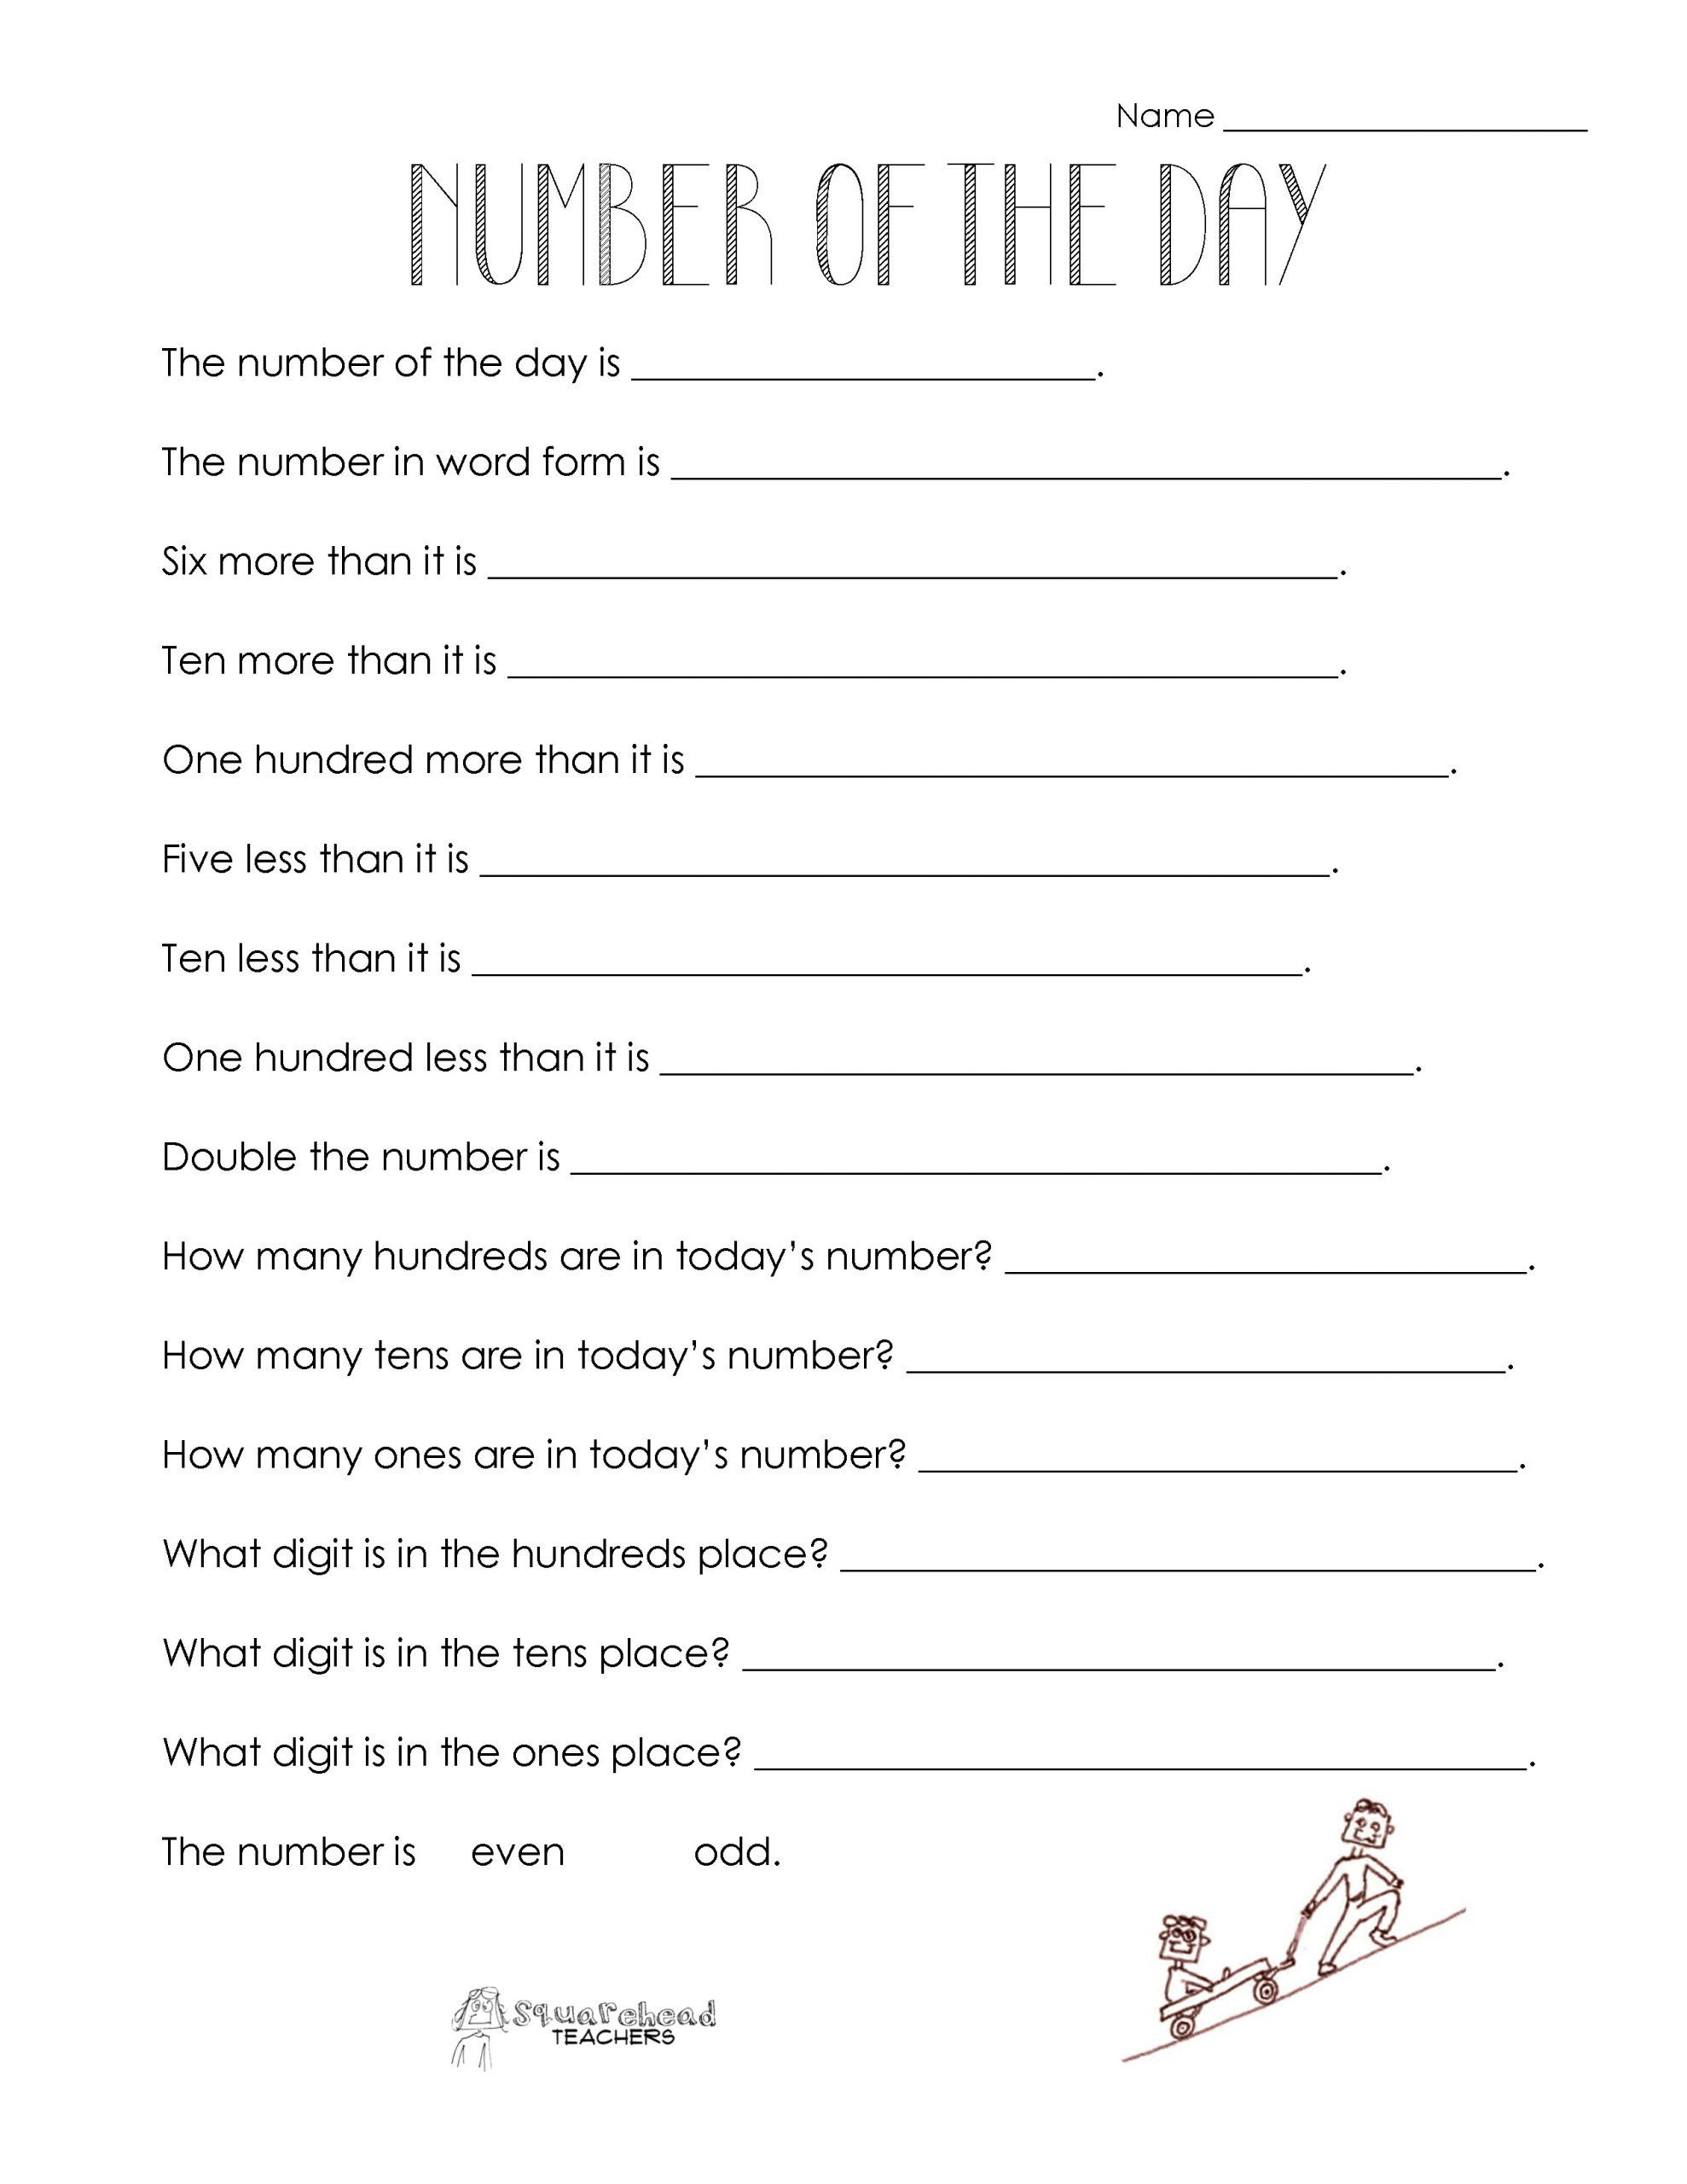 medium resolution of Patterns Worksheets 4th Grade Number Of the Day Worksheet Collection   Sequencing  worksheets